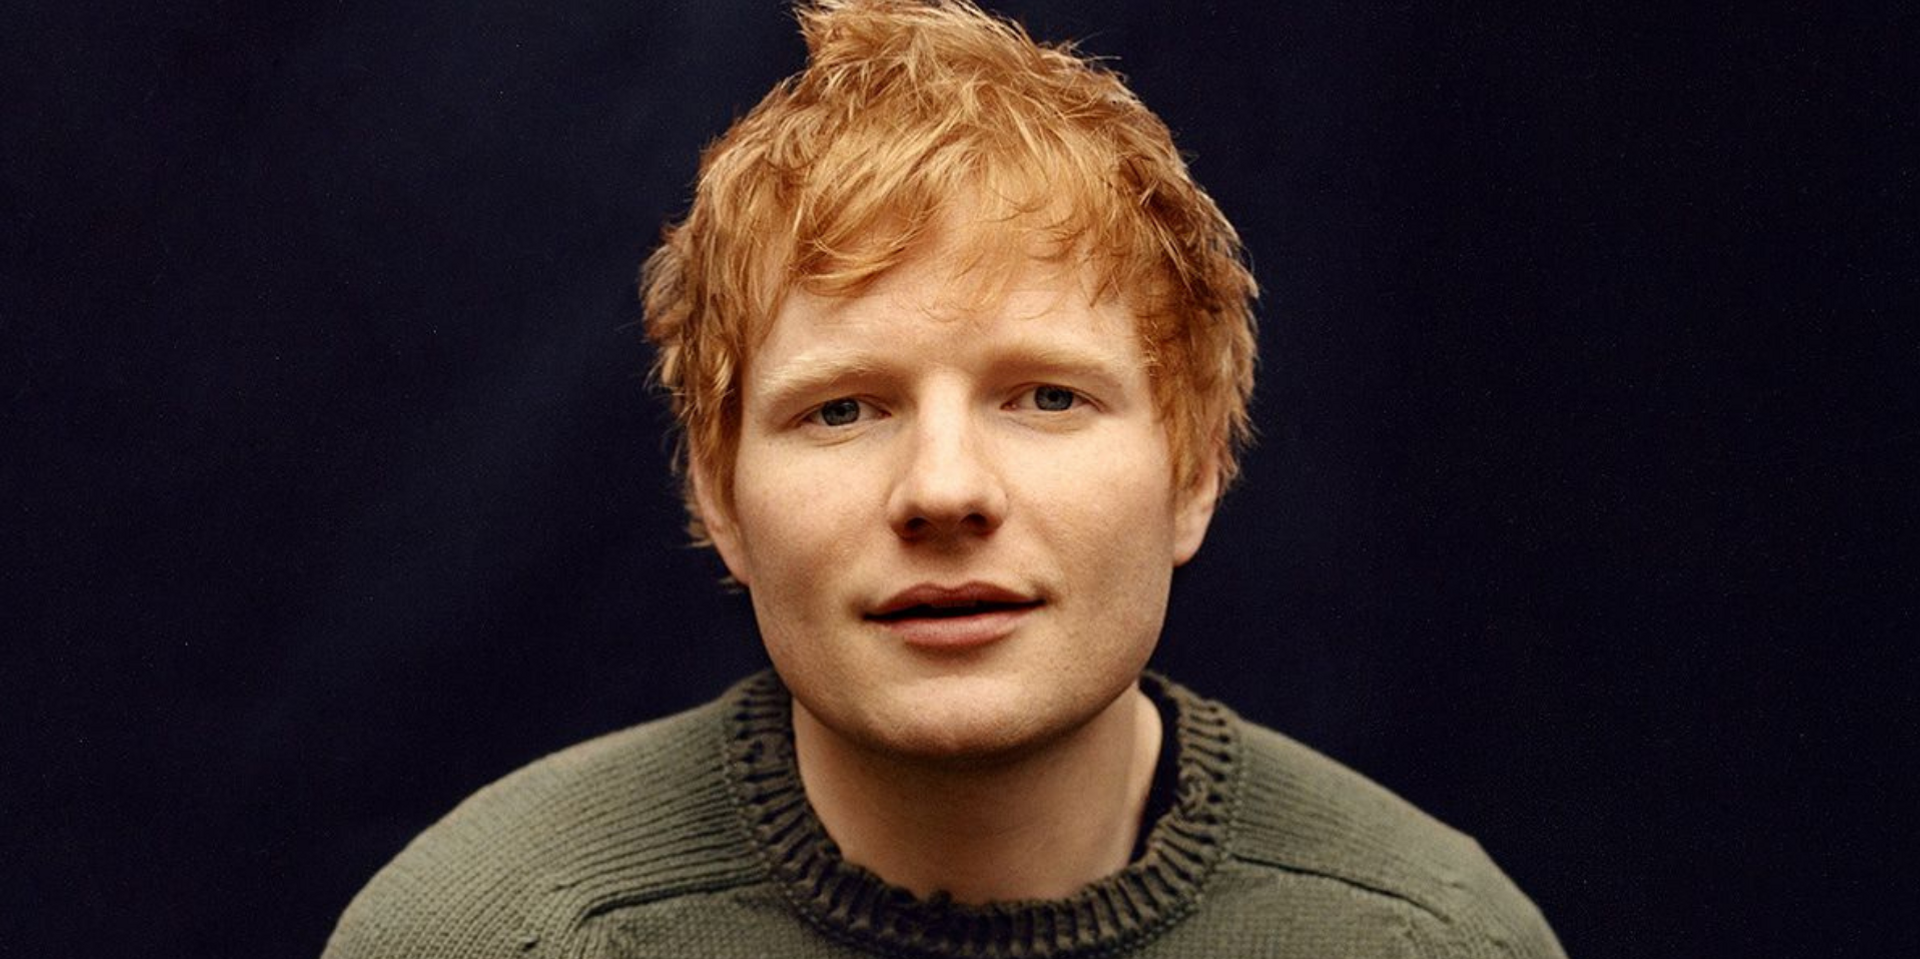 Ed Sheeran's debut album '+' turns 10 this year, here are 10 things you didn't know about the singer-songwriter